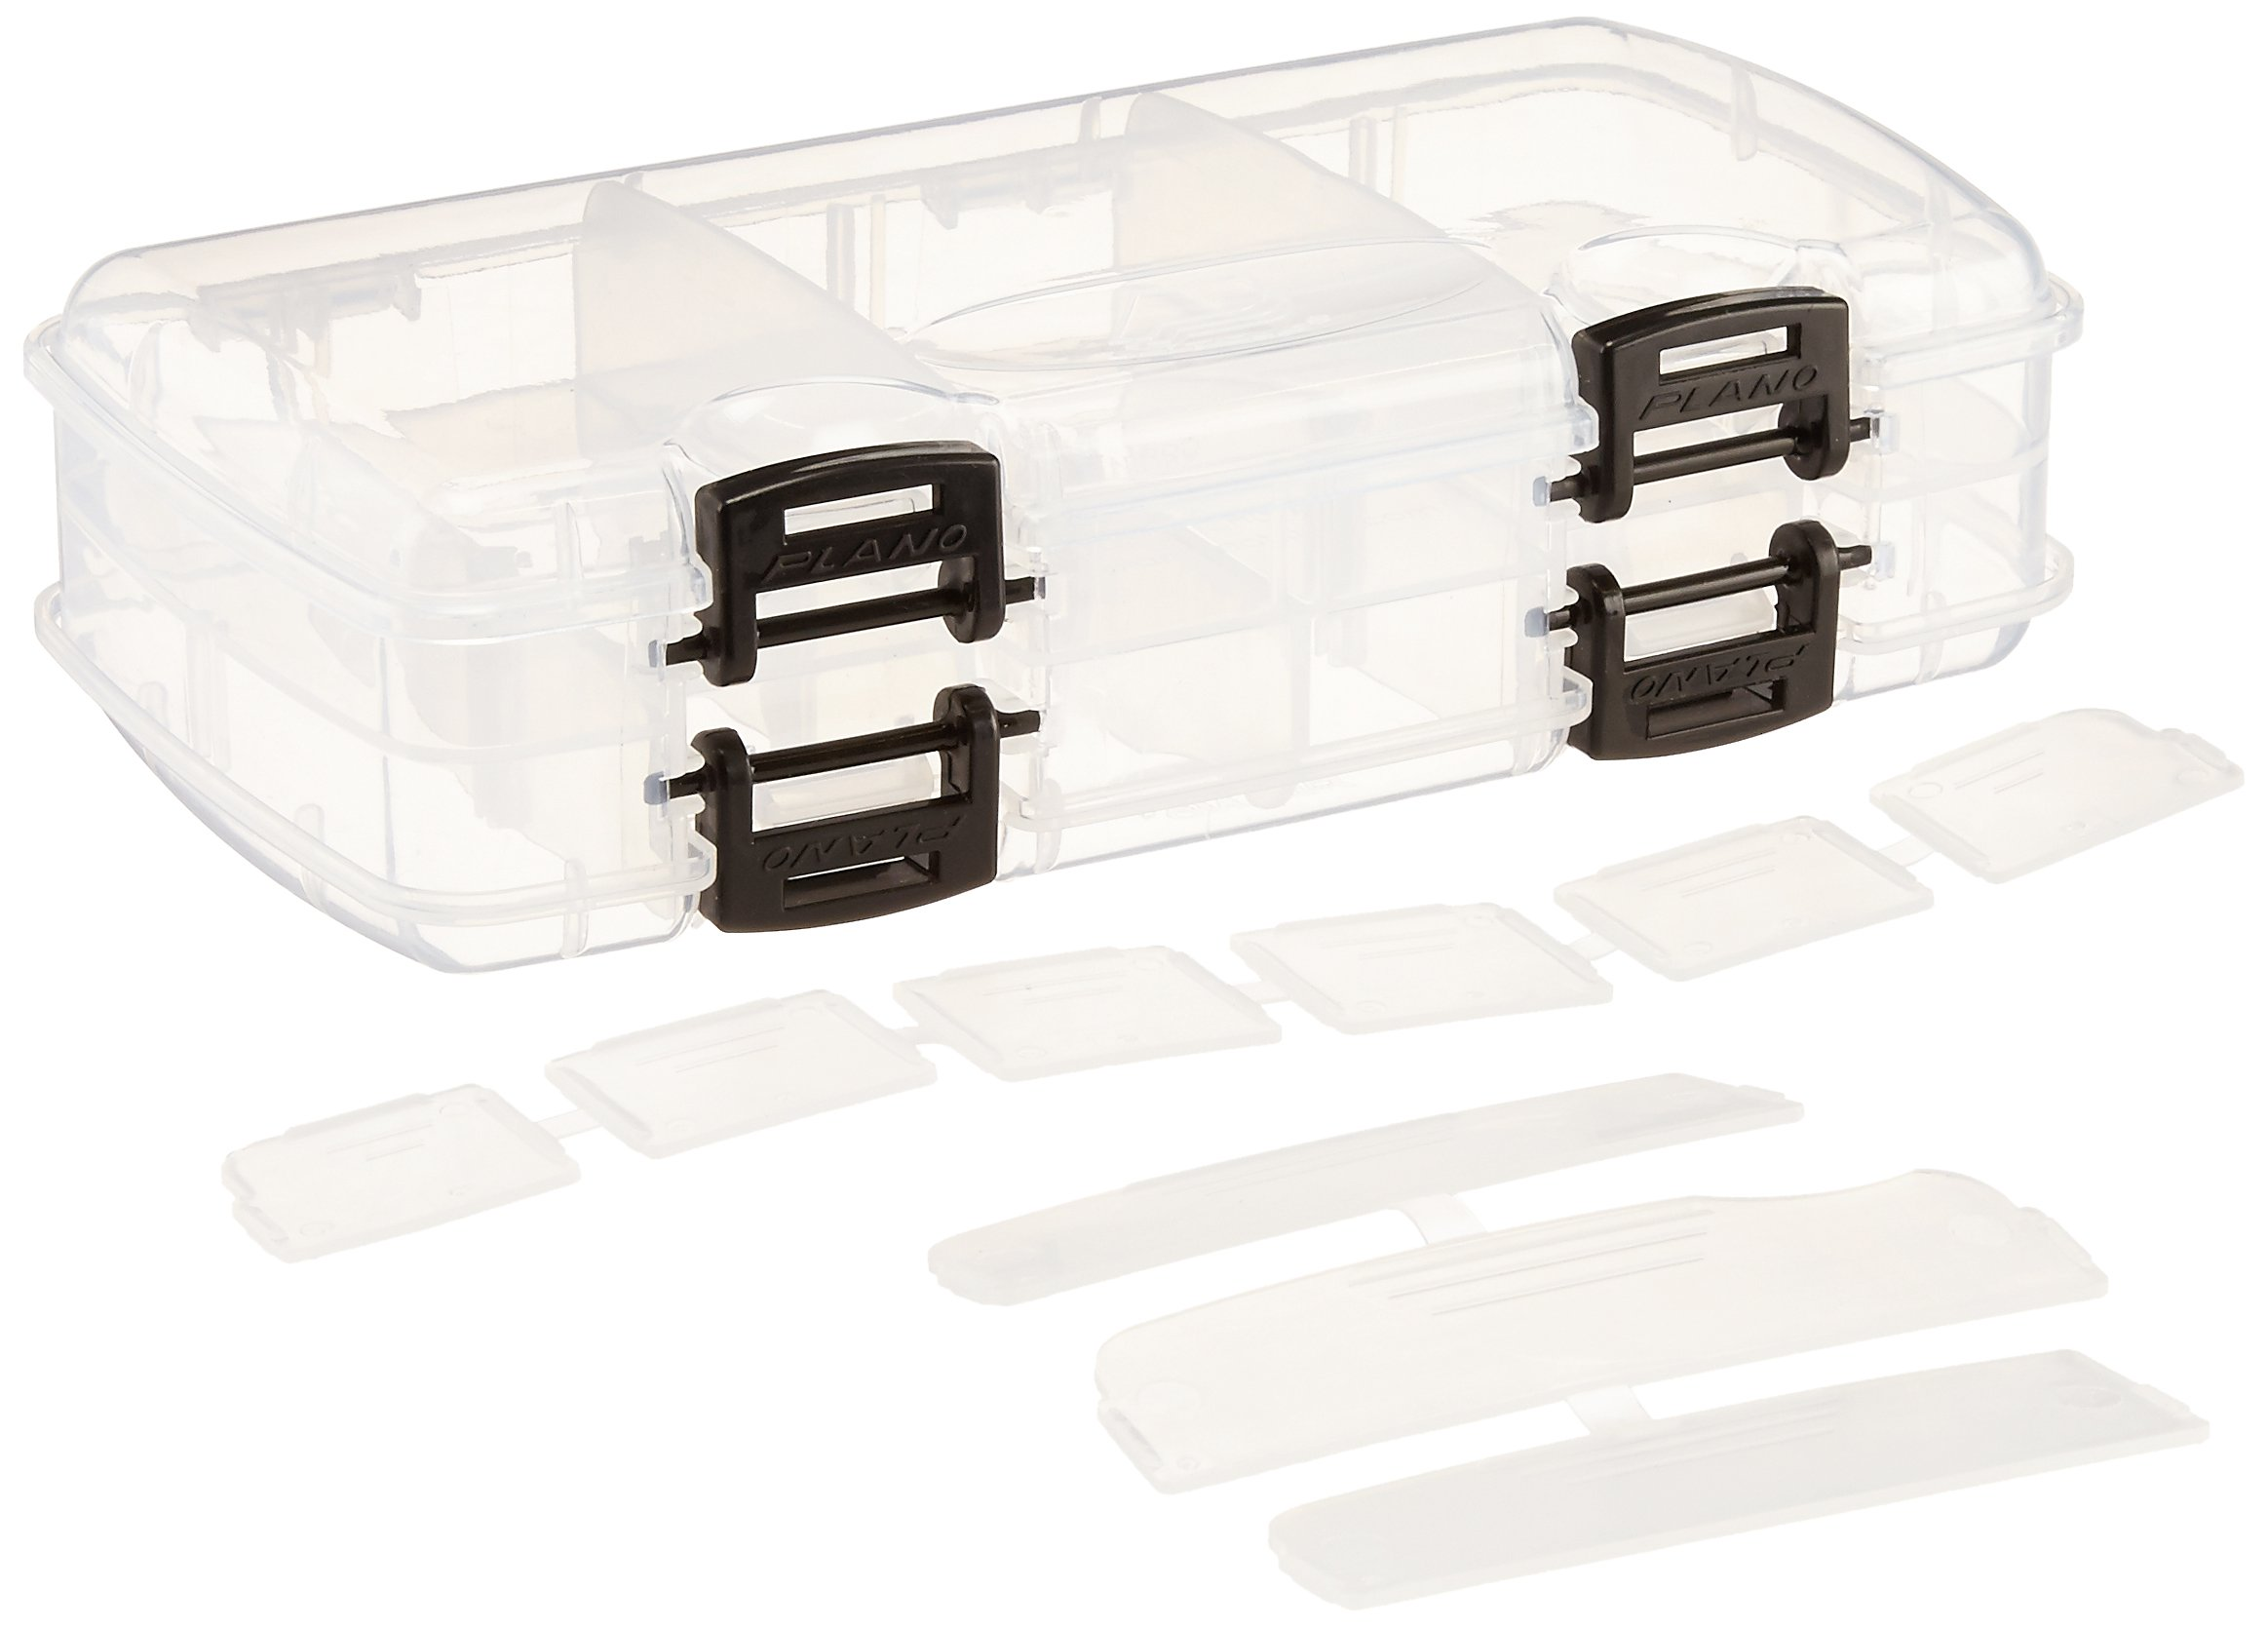 Plano 3450-23 Double-Sided Tackle Box, Premium Tackle Storage by Plano